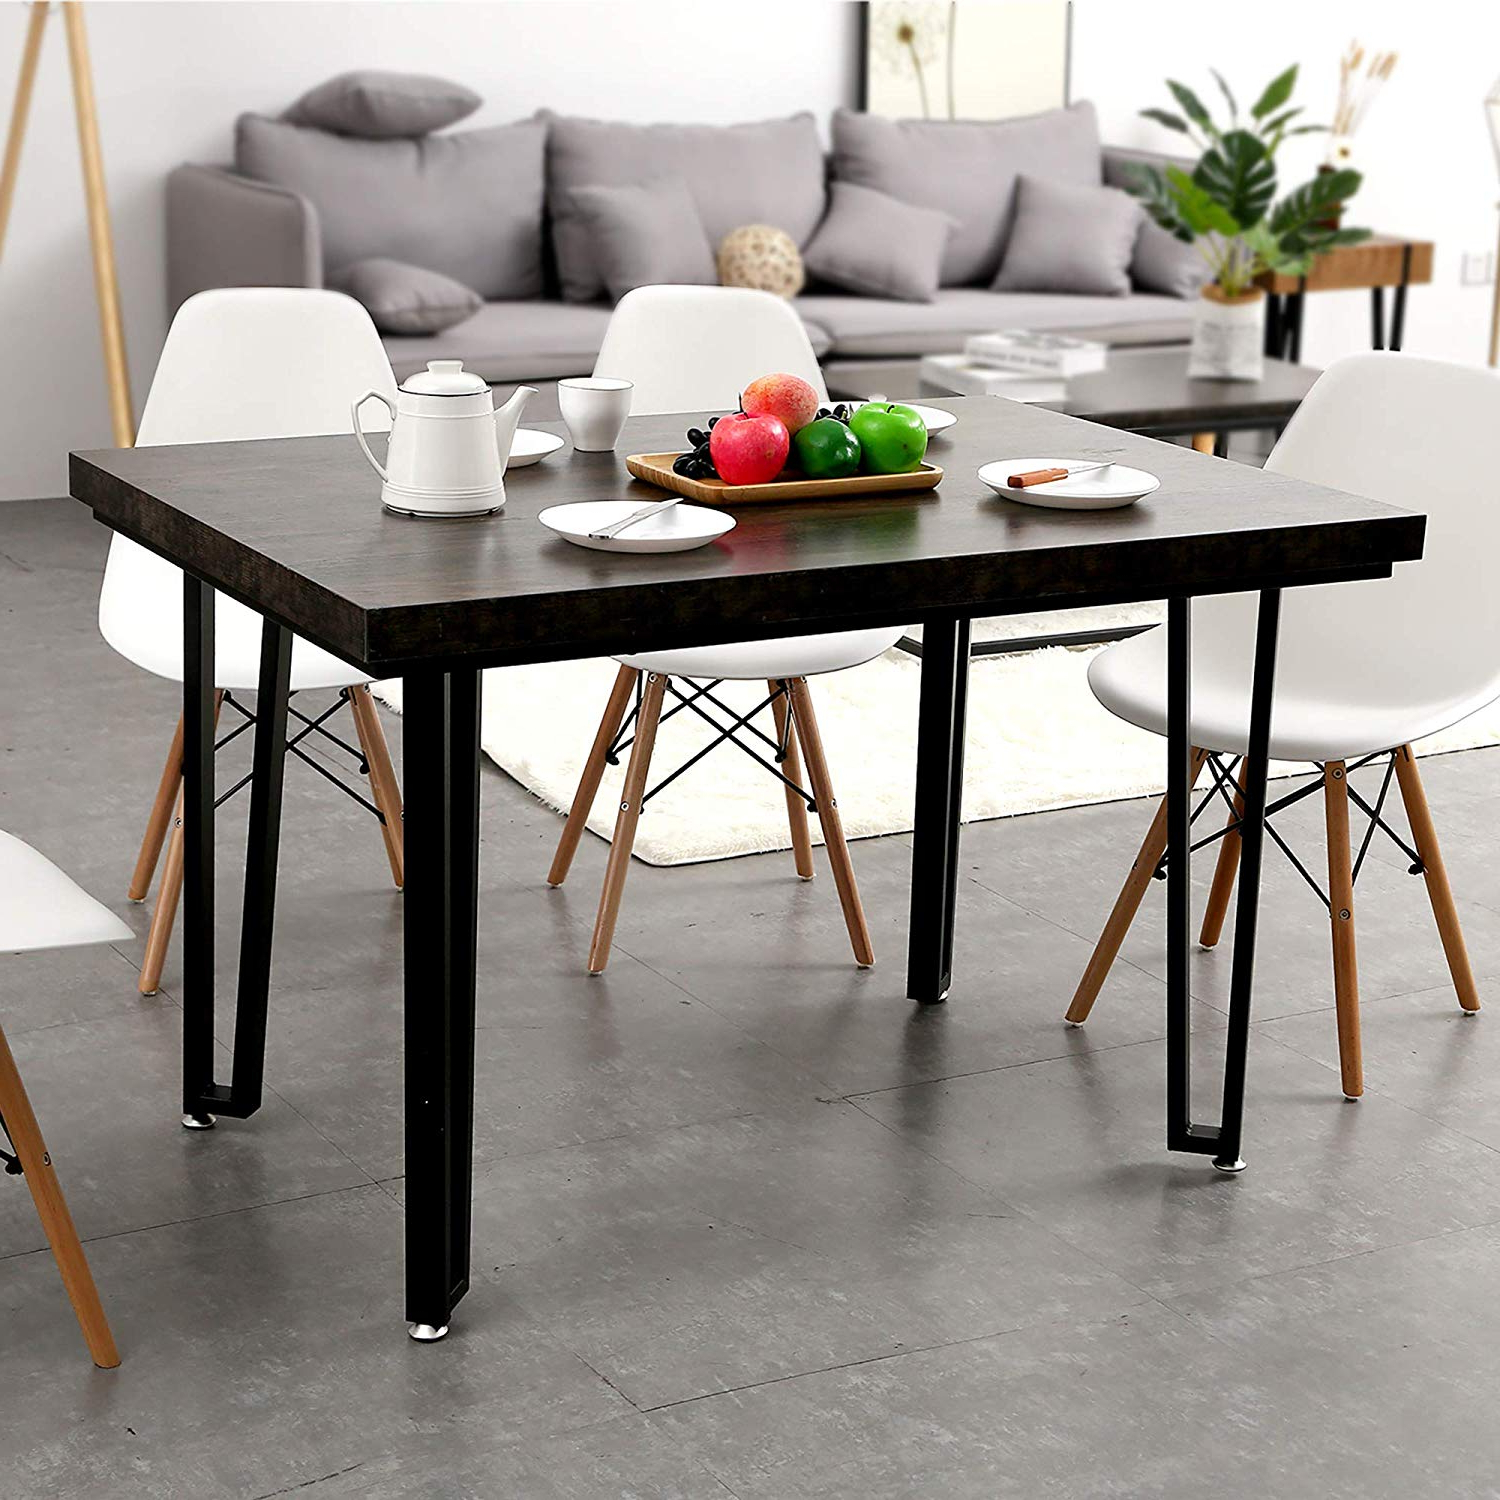 "Ivinta Alacrity 47.2"" Rustic Modern Farmhouse Matte Black Metal Rectangle Kitchen And Dining Room Table Mid Century Industrial in Most Recent Frosted Glass Modern Dining Tables With Grey Finish Metal Tapered Legs"